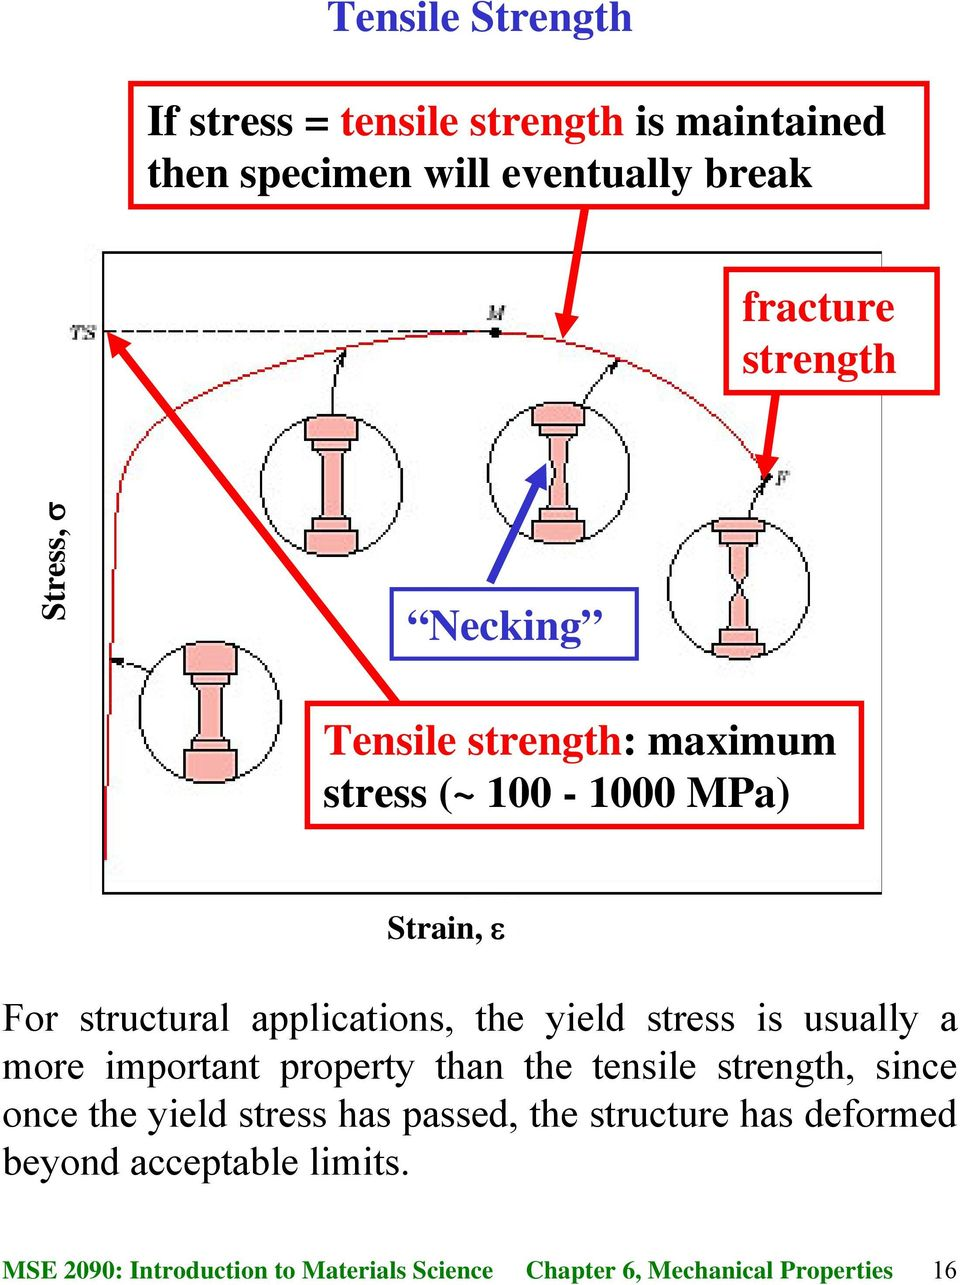 structural applications, the yield stress is usually a more important property than the tensile